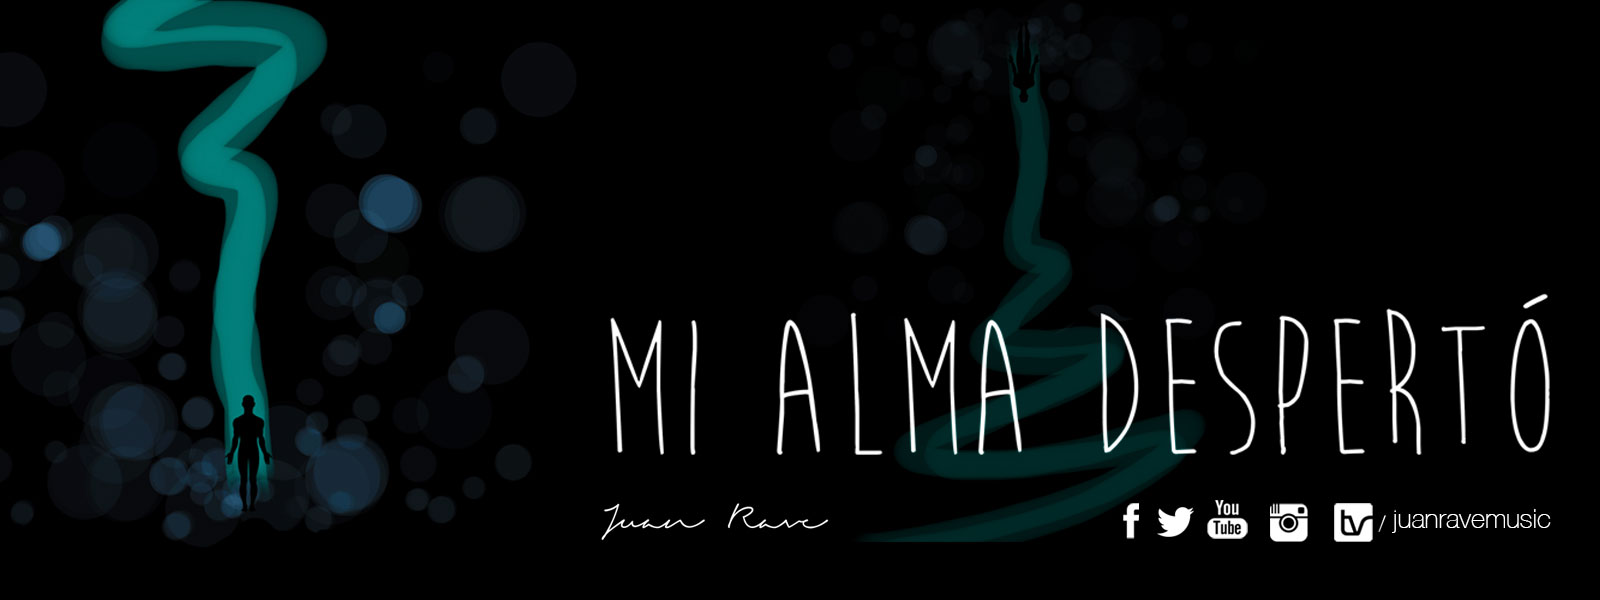 Juan Rave Channel Cover